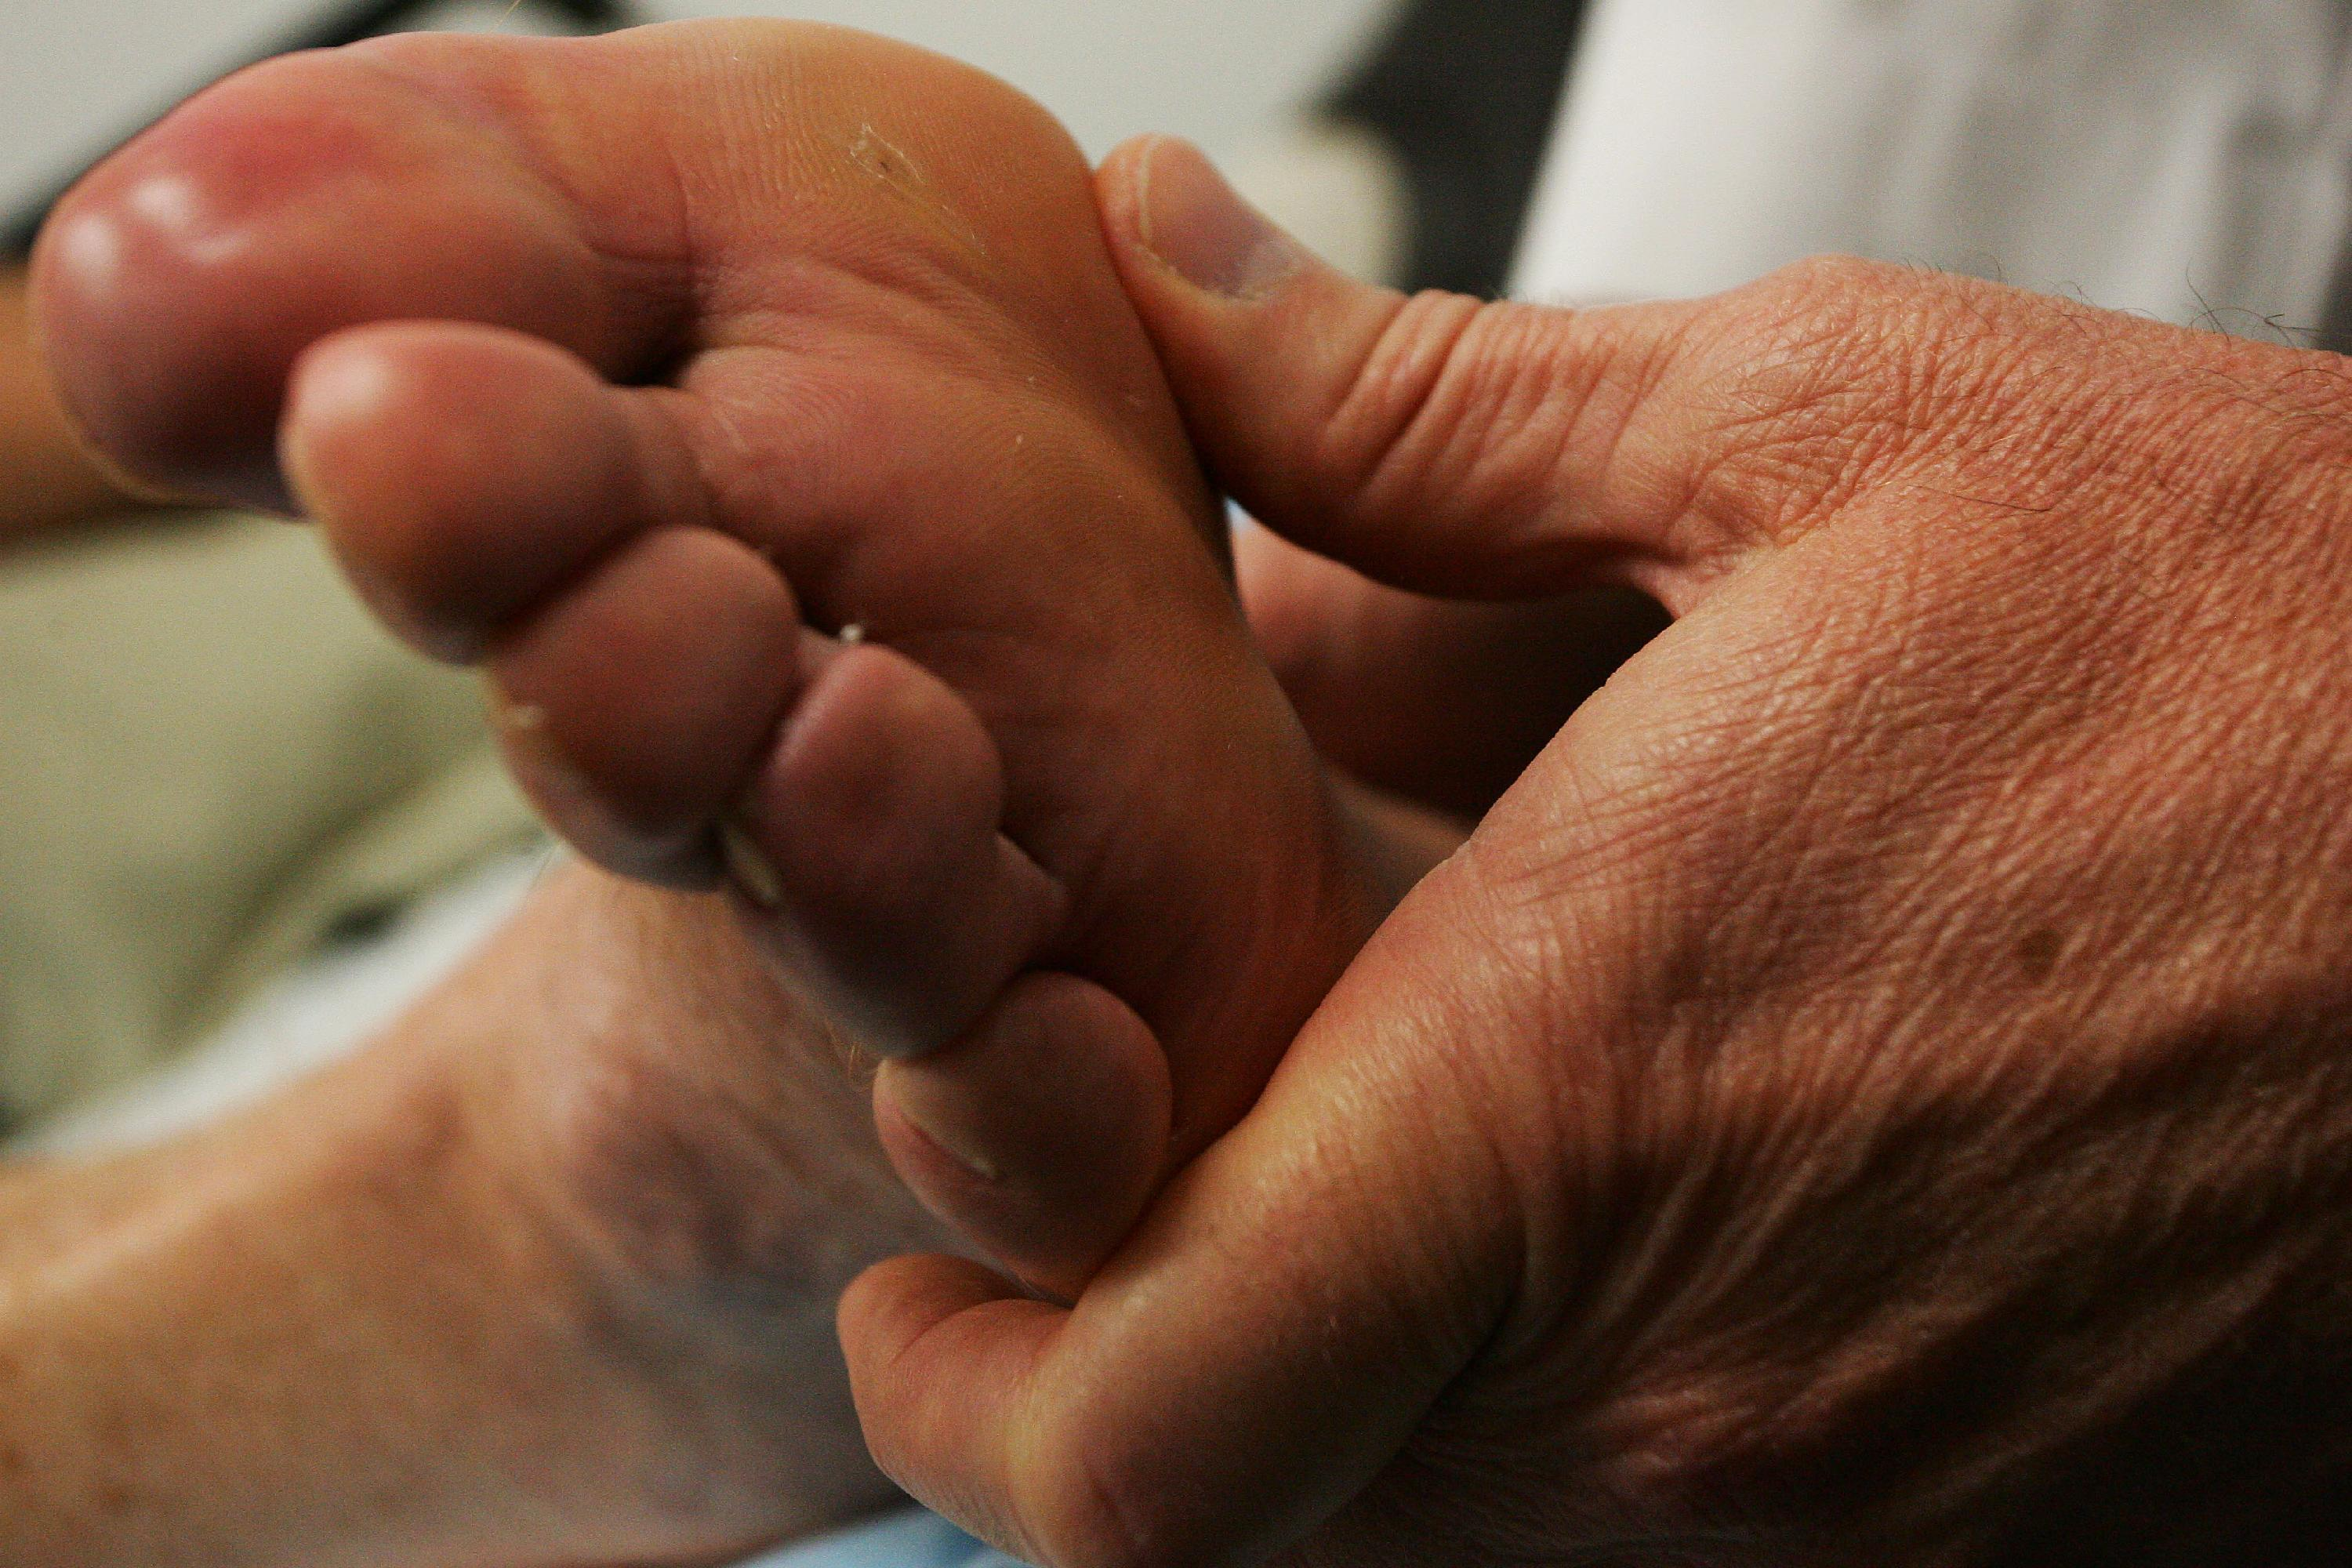 One in four upstate New Yorkers with Type 2 diabetes do not get recommended foot exams. (Buffalo News file photo)